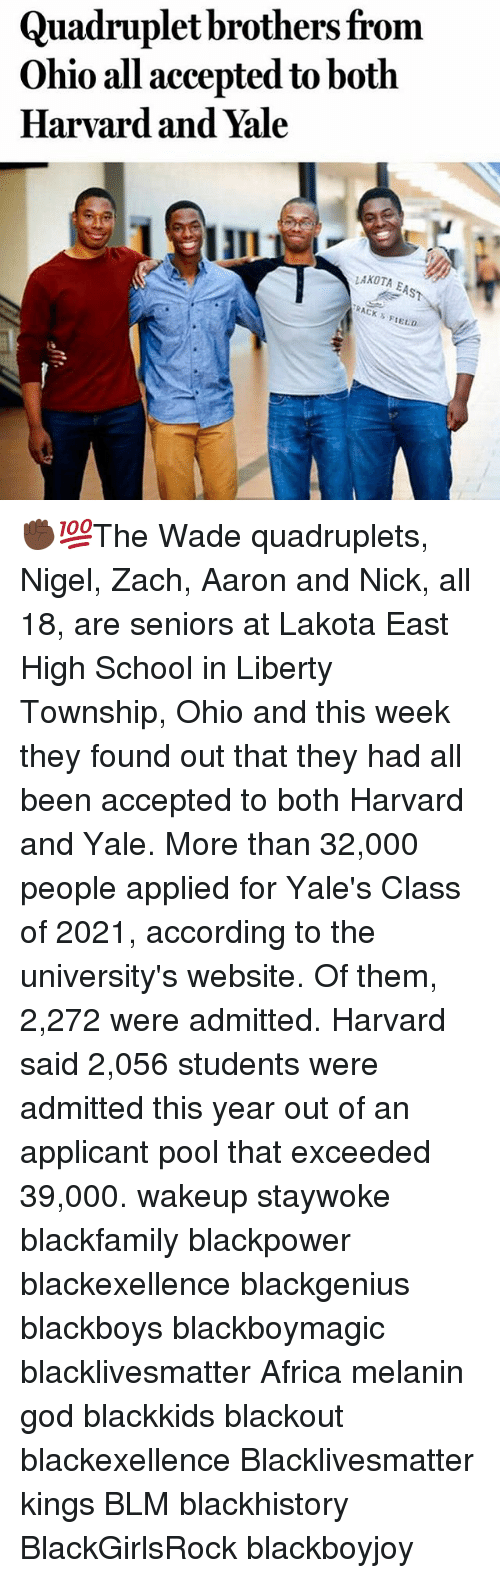 blackhistory: Quadruplet brothers from  Ohio all accepted to both  Harvard and Yale  LAKOTA  EAST  TRACK s  FIELD ✊🏿💯The Wade quadruplets, Nigel, Zach, Aaron and Nick, all 18, are seniors at Lakota East High School in Liberty Township, Ohio and this week they found out that they had all been accepted to both Harvard and Yale. More than 32,000 people applied for Yale's Class of 2021, according to the university's website. Of them, 2,272 were admitted. Harvard said 2,056 students were admitted this year out of an applicant pool that exceeded 39,000. wakeup staywoke blackfamily blackpower blackexellence blackgenius blackboys blackboymagic blacklivesmatter Africa melanin god blackkids blackout blackexellence Blacklivesmatter kings BLM blackhistory BlackGirlsRock blackboyjoy